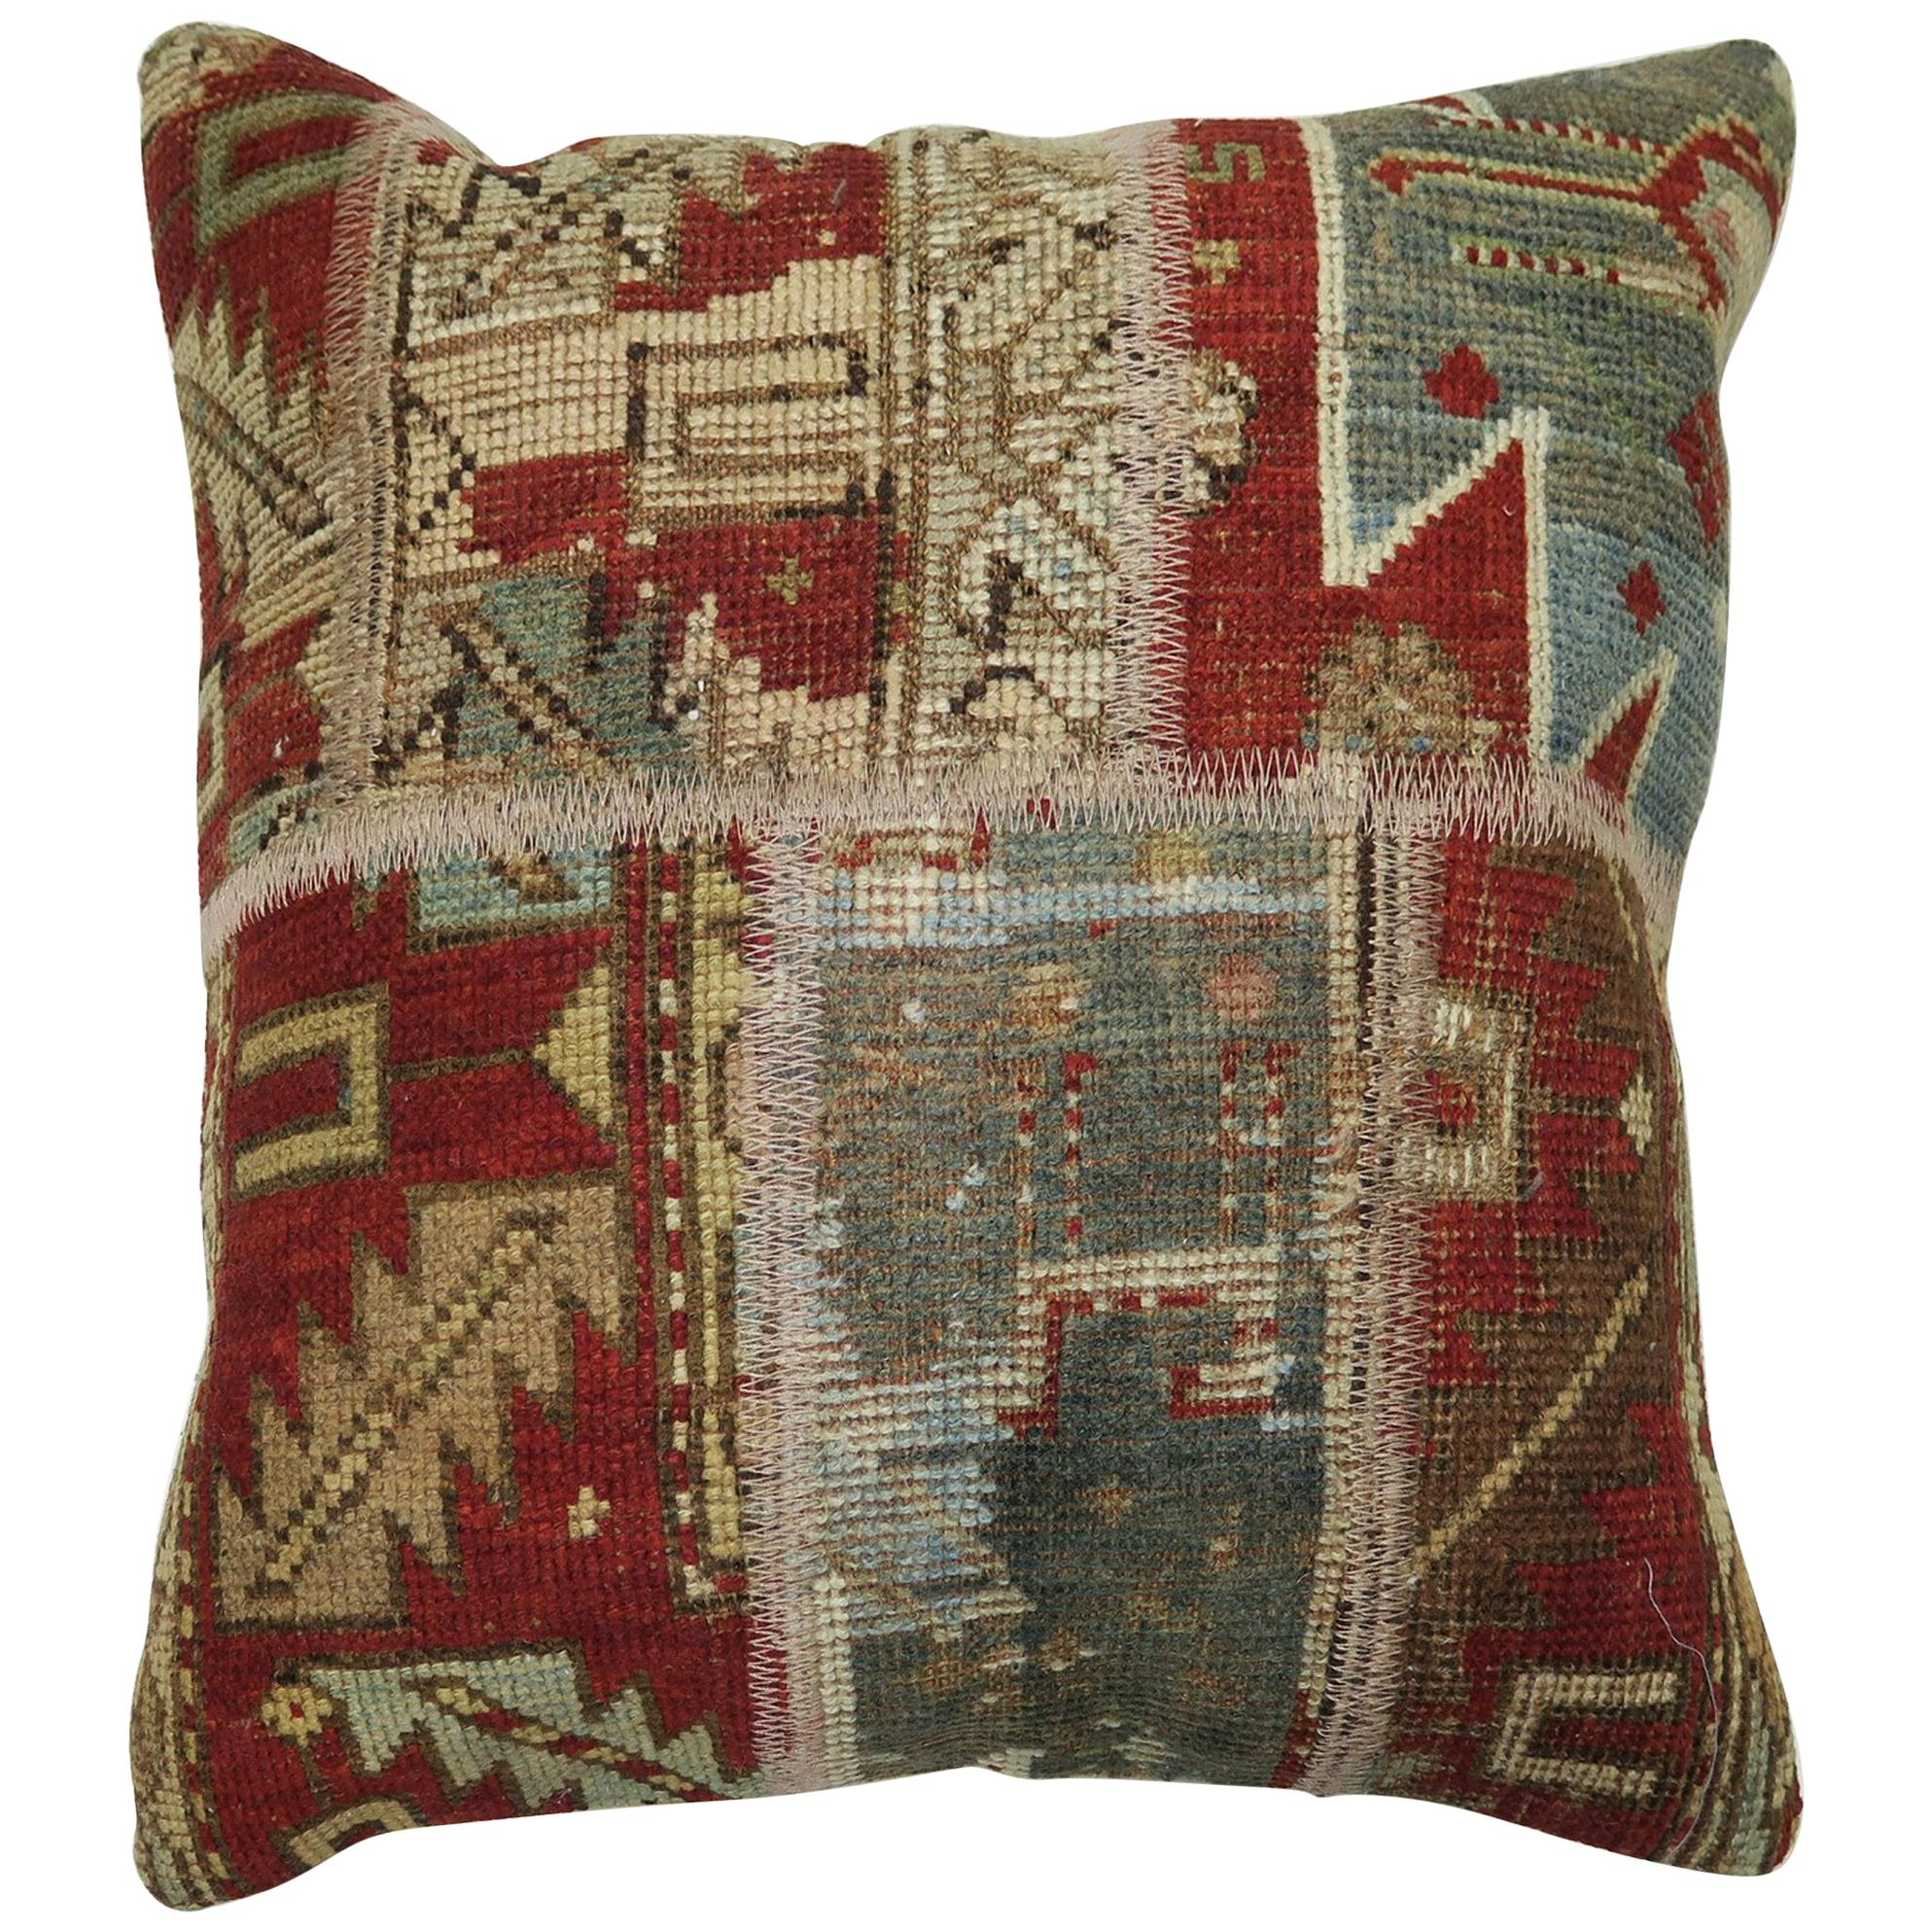 Rustic Antique Tribal Caucasian Patchwork Rug Pillow in Red and Soft Blue